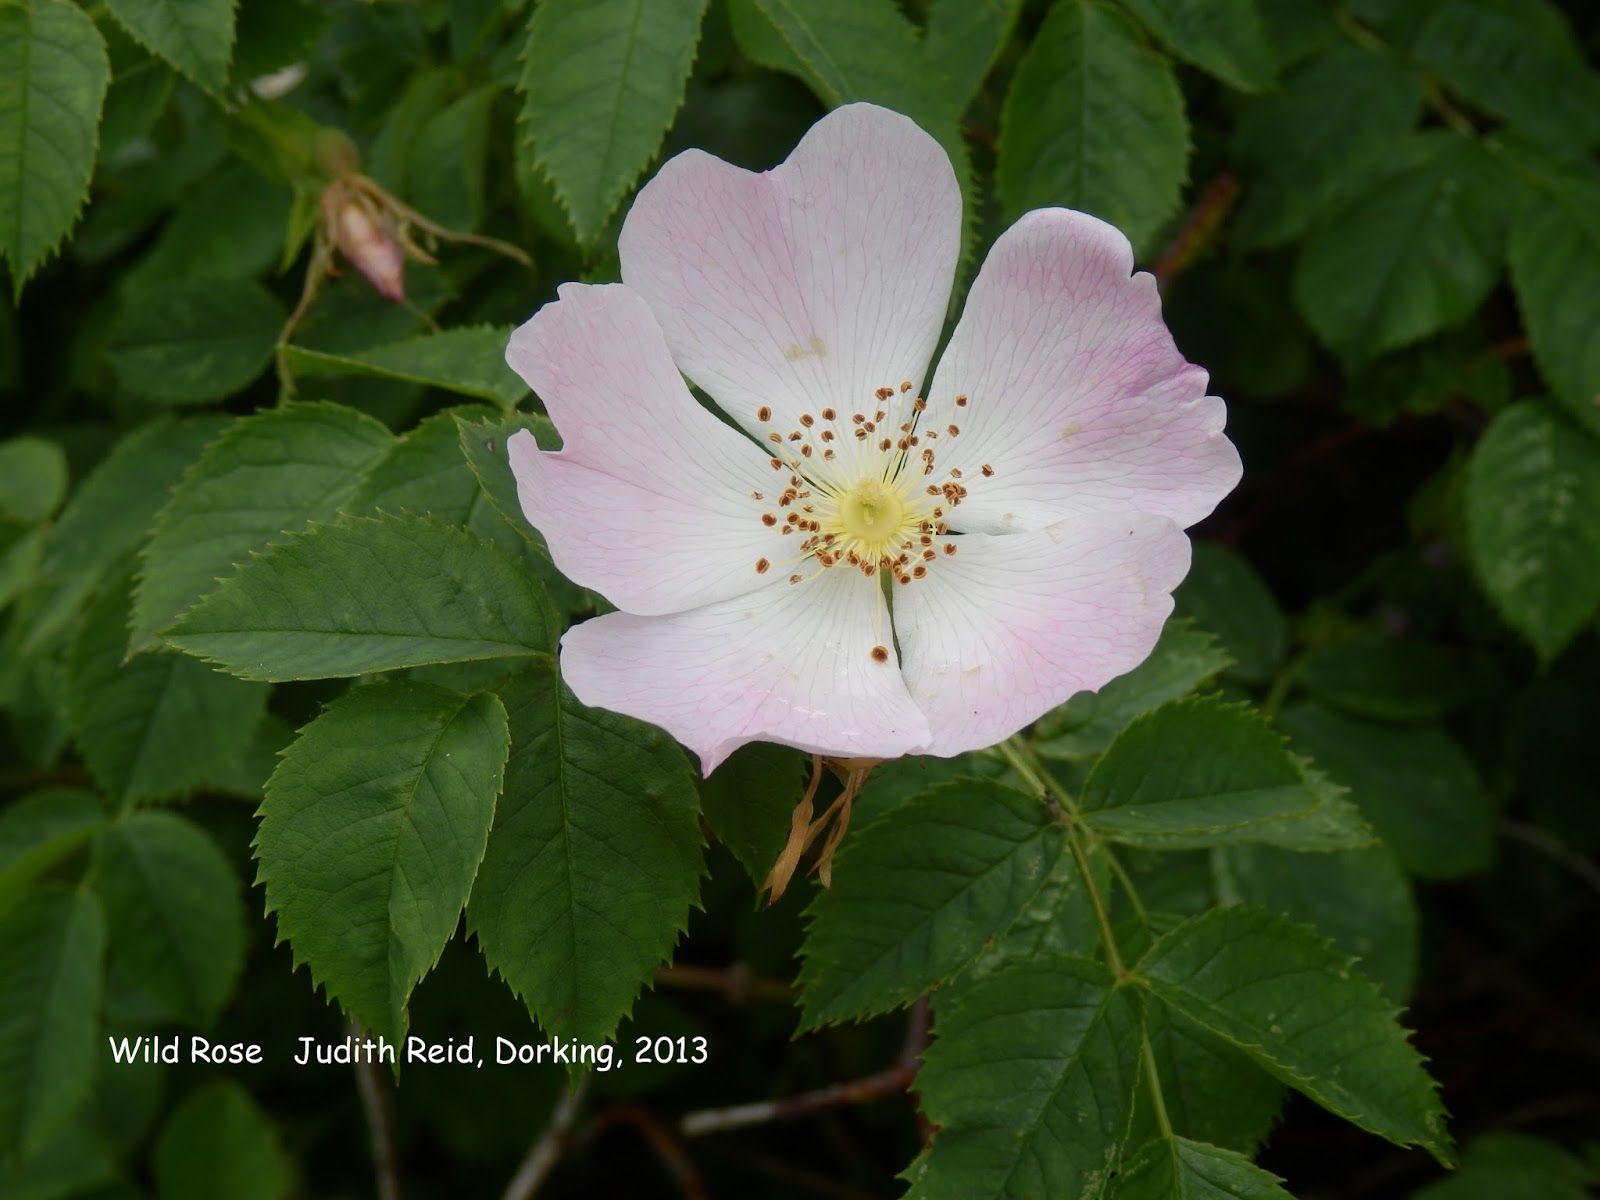 Wild rose bach flower